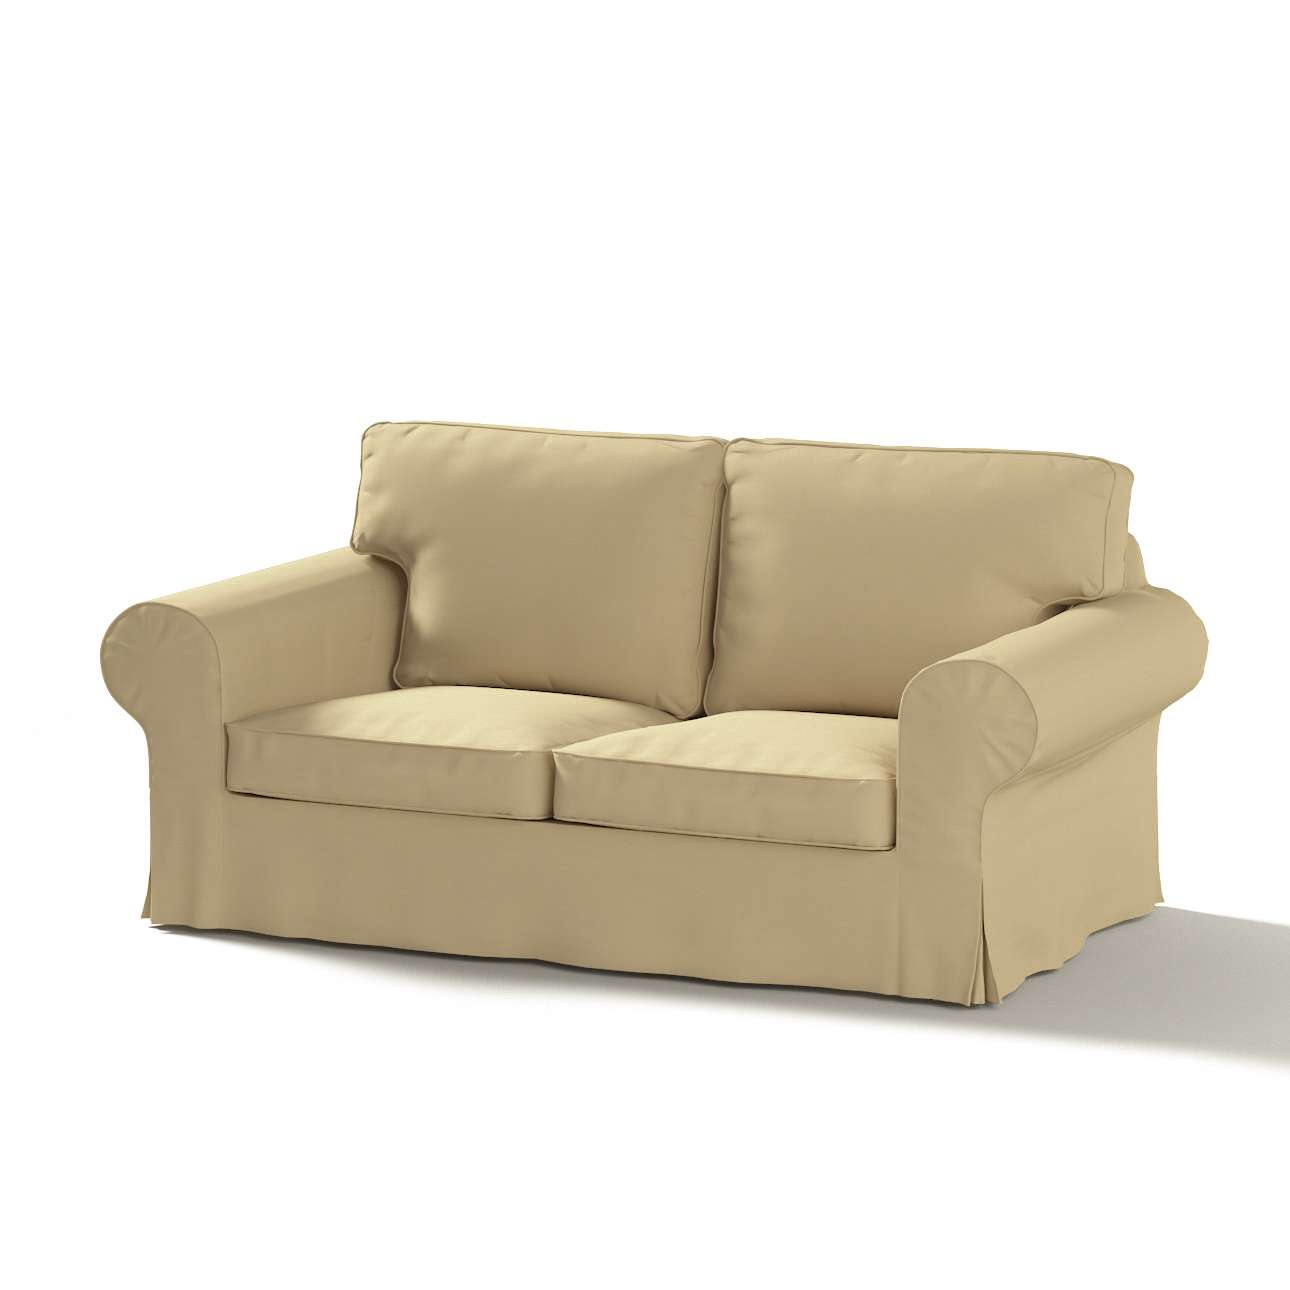 Ektorp 2-seater sofa cover in collection Panama Cotton, fabric: 702-01